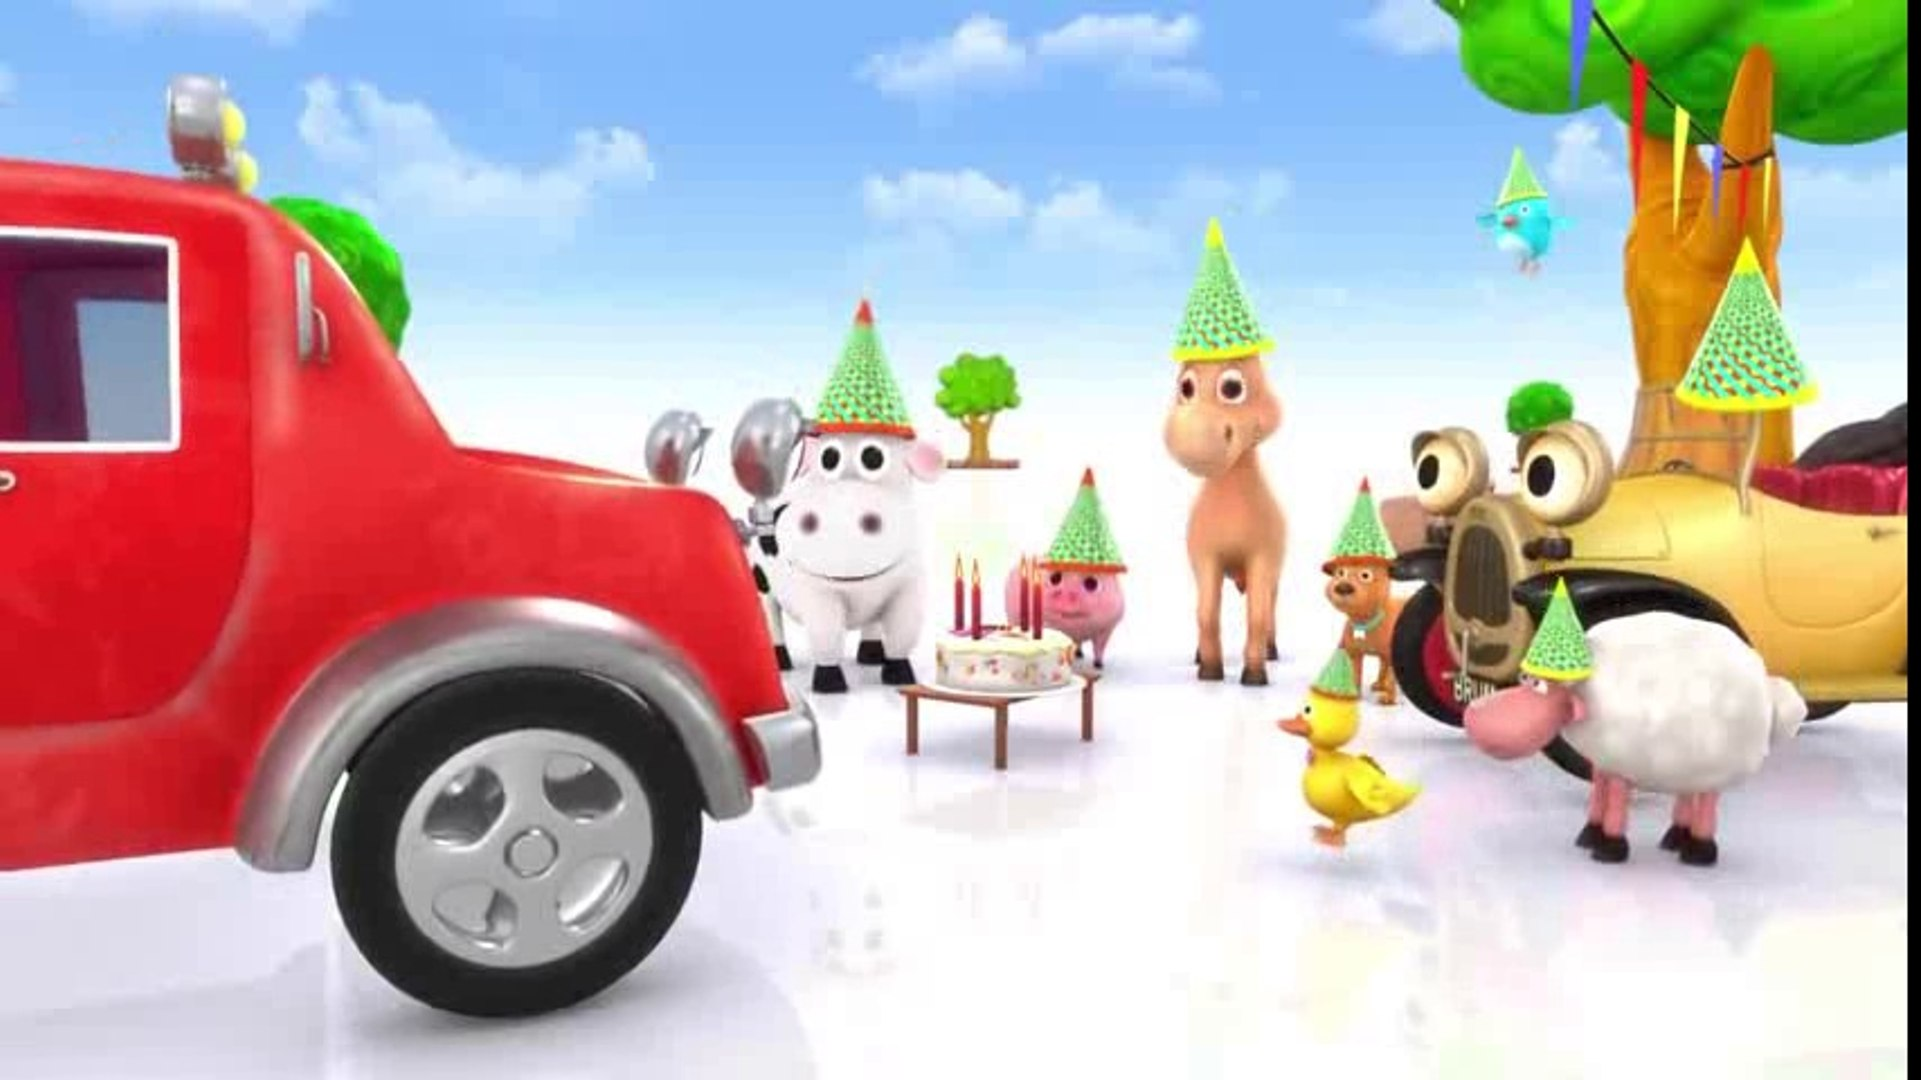 Brum and Beep's Birthday Party - KIDS SHOW FULL EPISODE - Cars and Trucks for kids